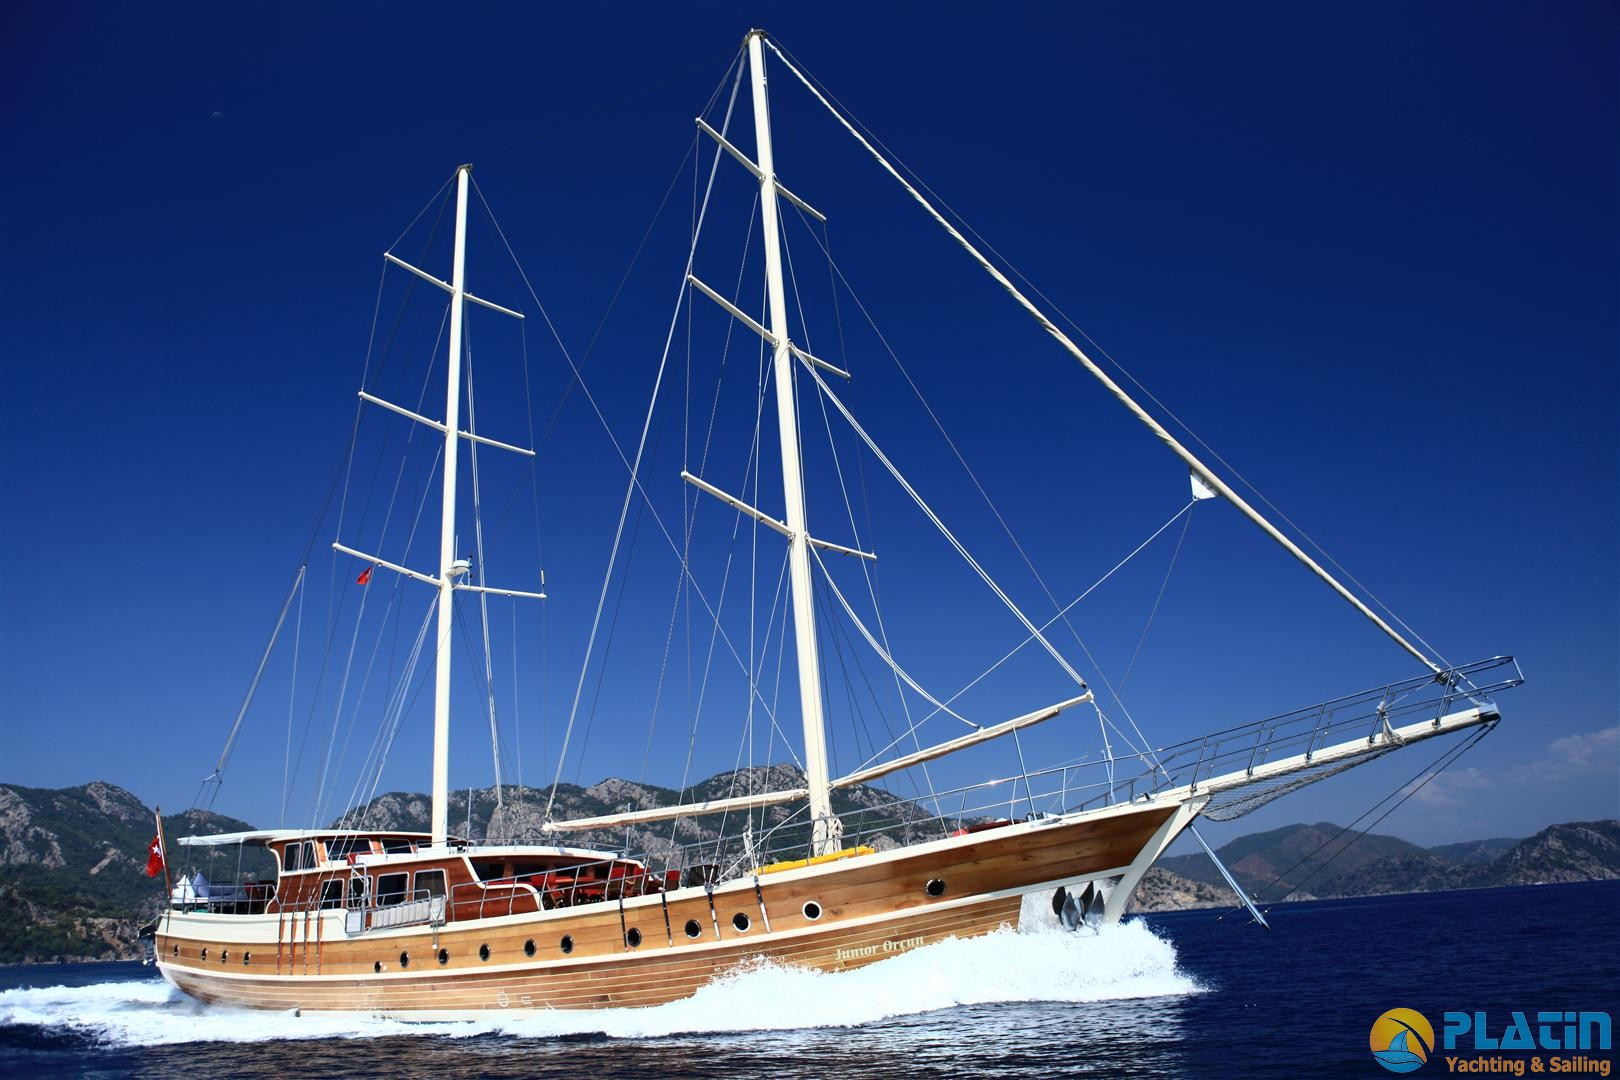 Junior orcun gulet yacht charter 8 cabins ac 32 m yacht for By the cabin catamaran charters